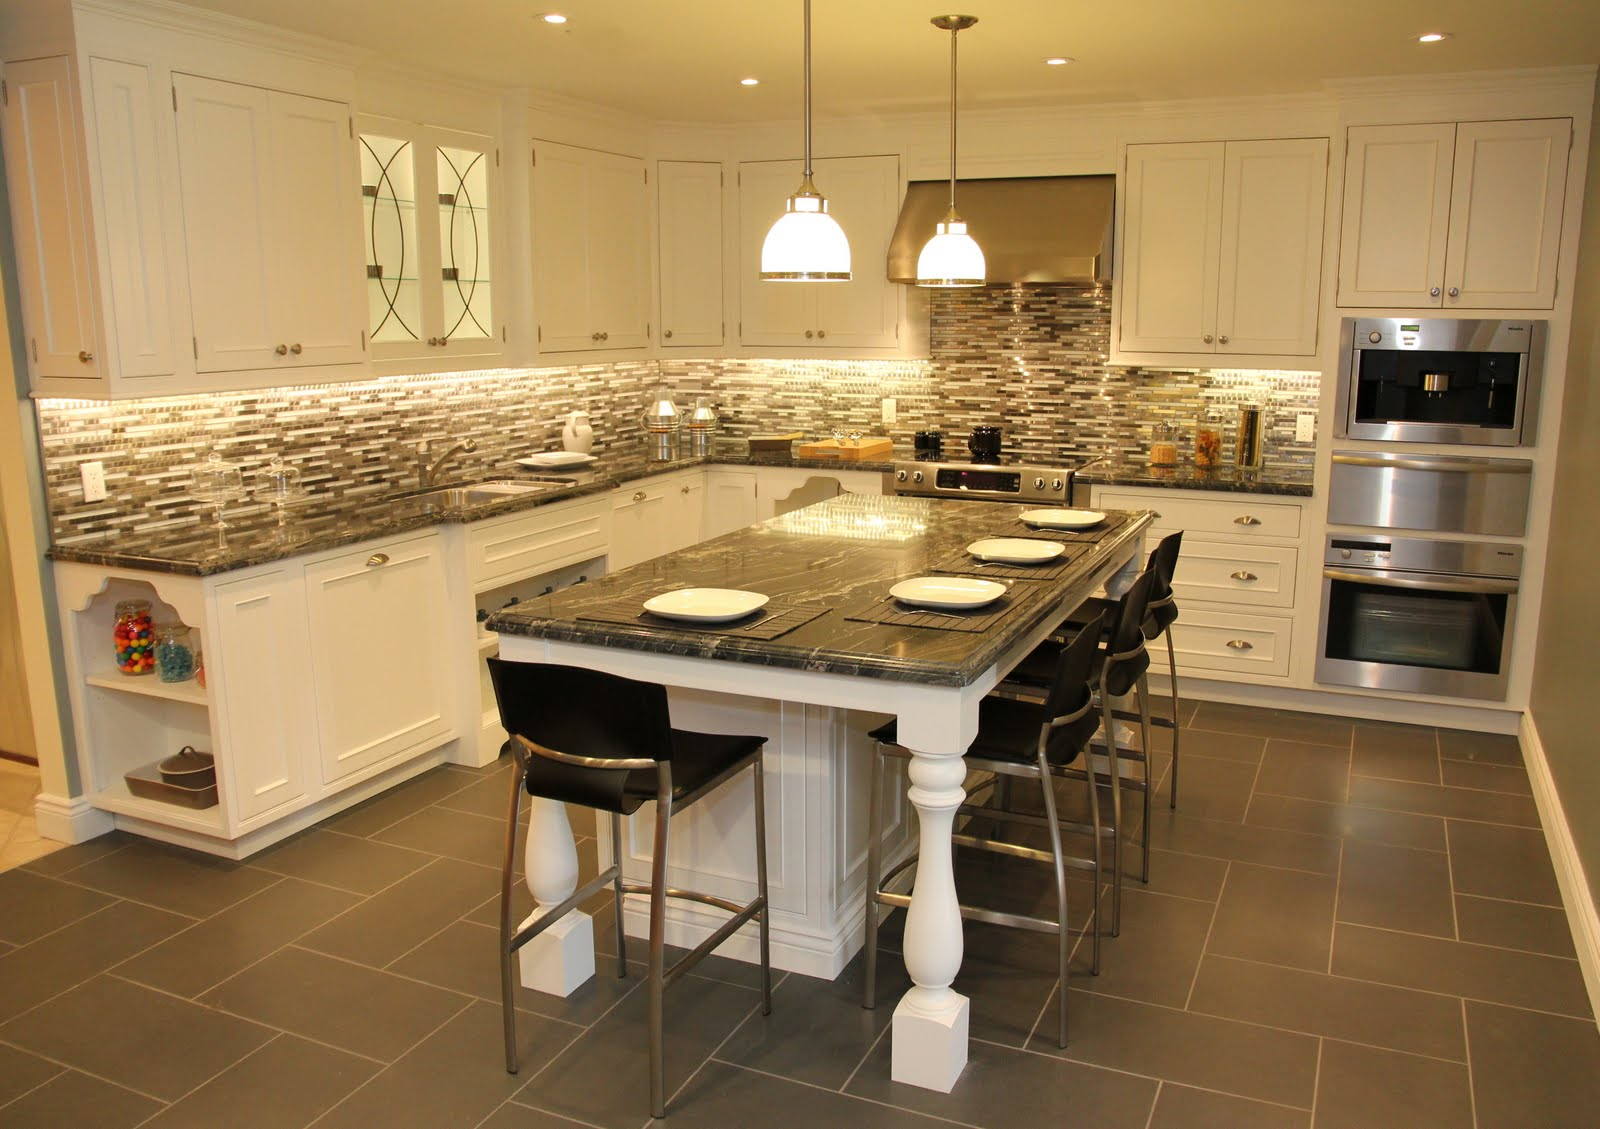 Monarch Kitchen Island Lg Appliances And Bath Centre Function Beauty Making